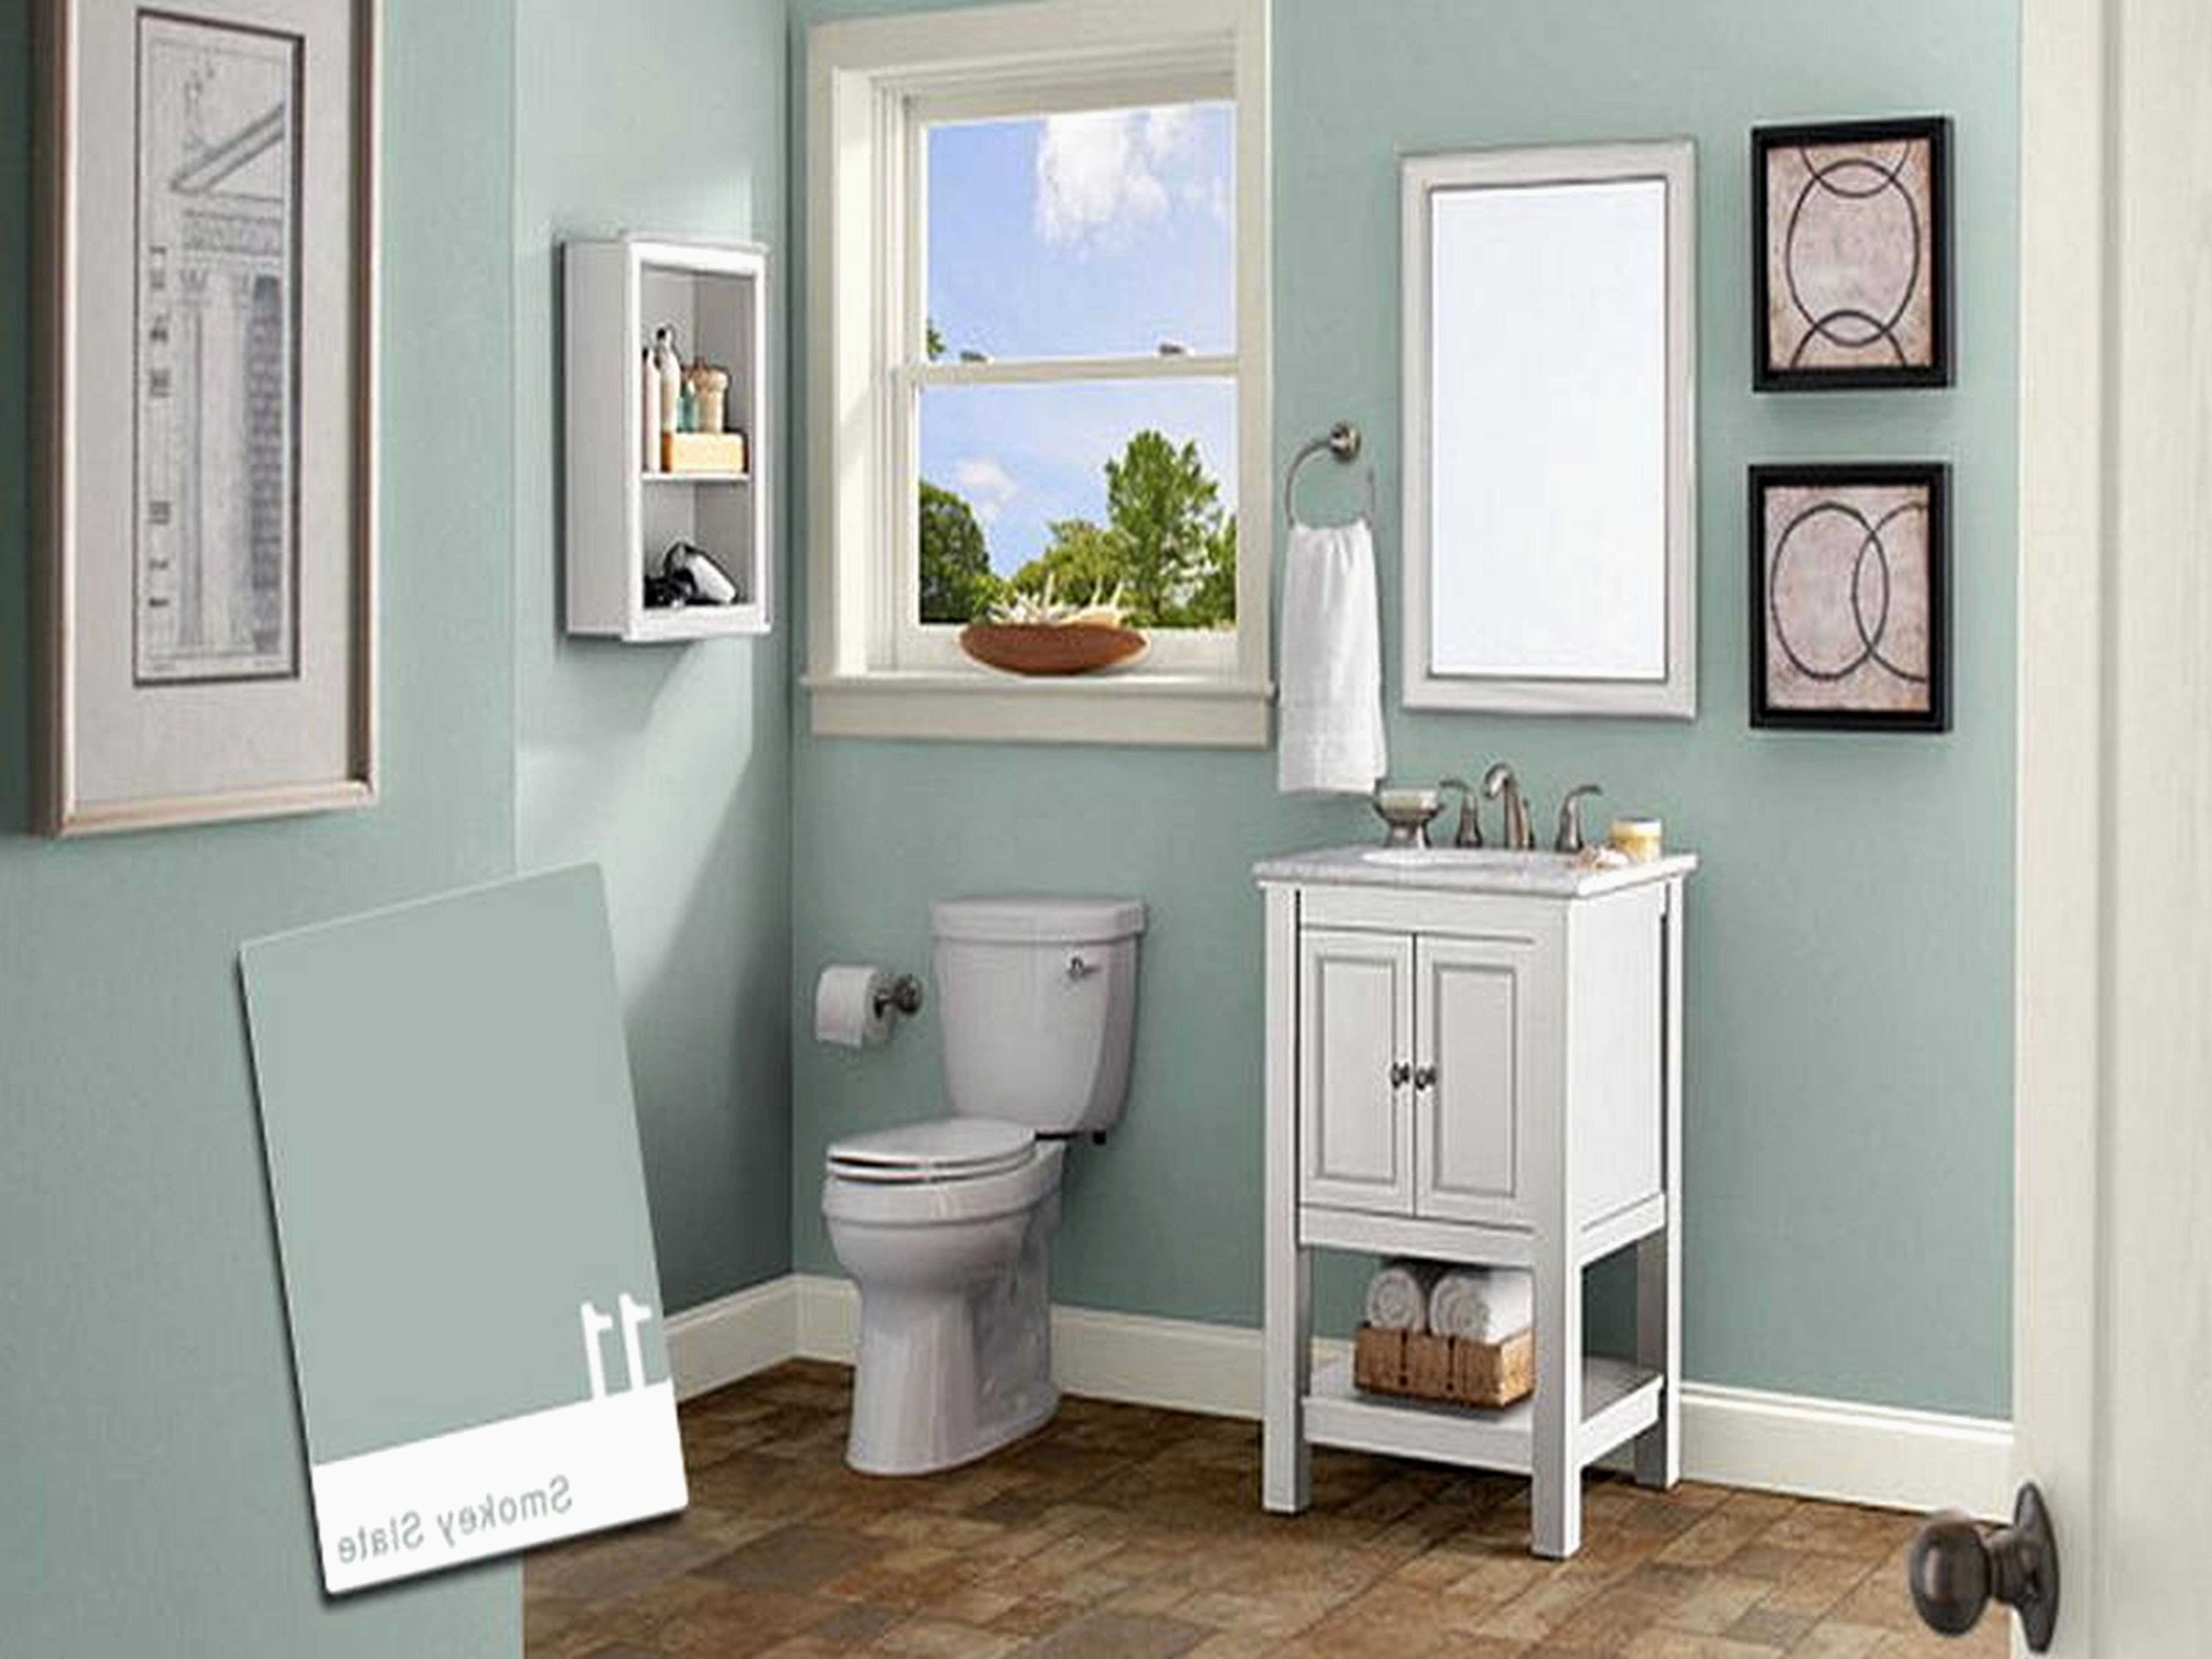 What Are Some Good Colors To Paint Bathroom